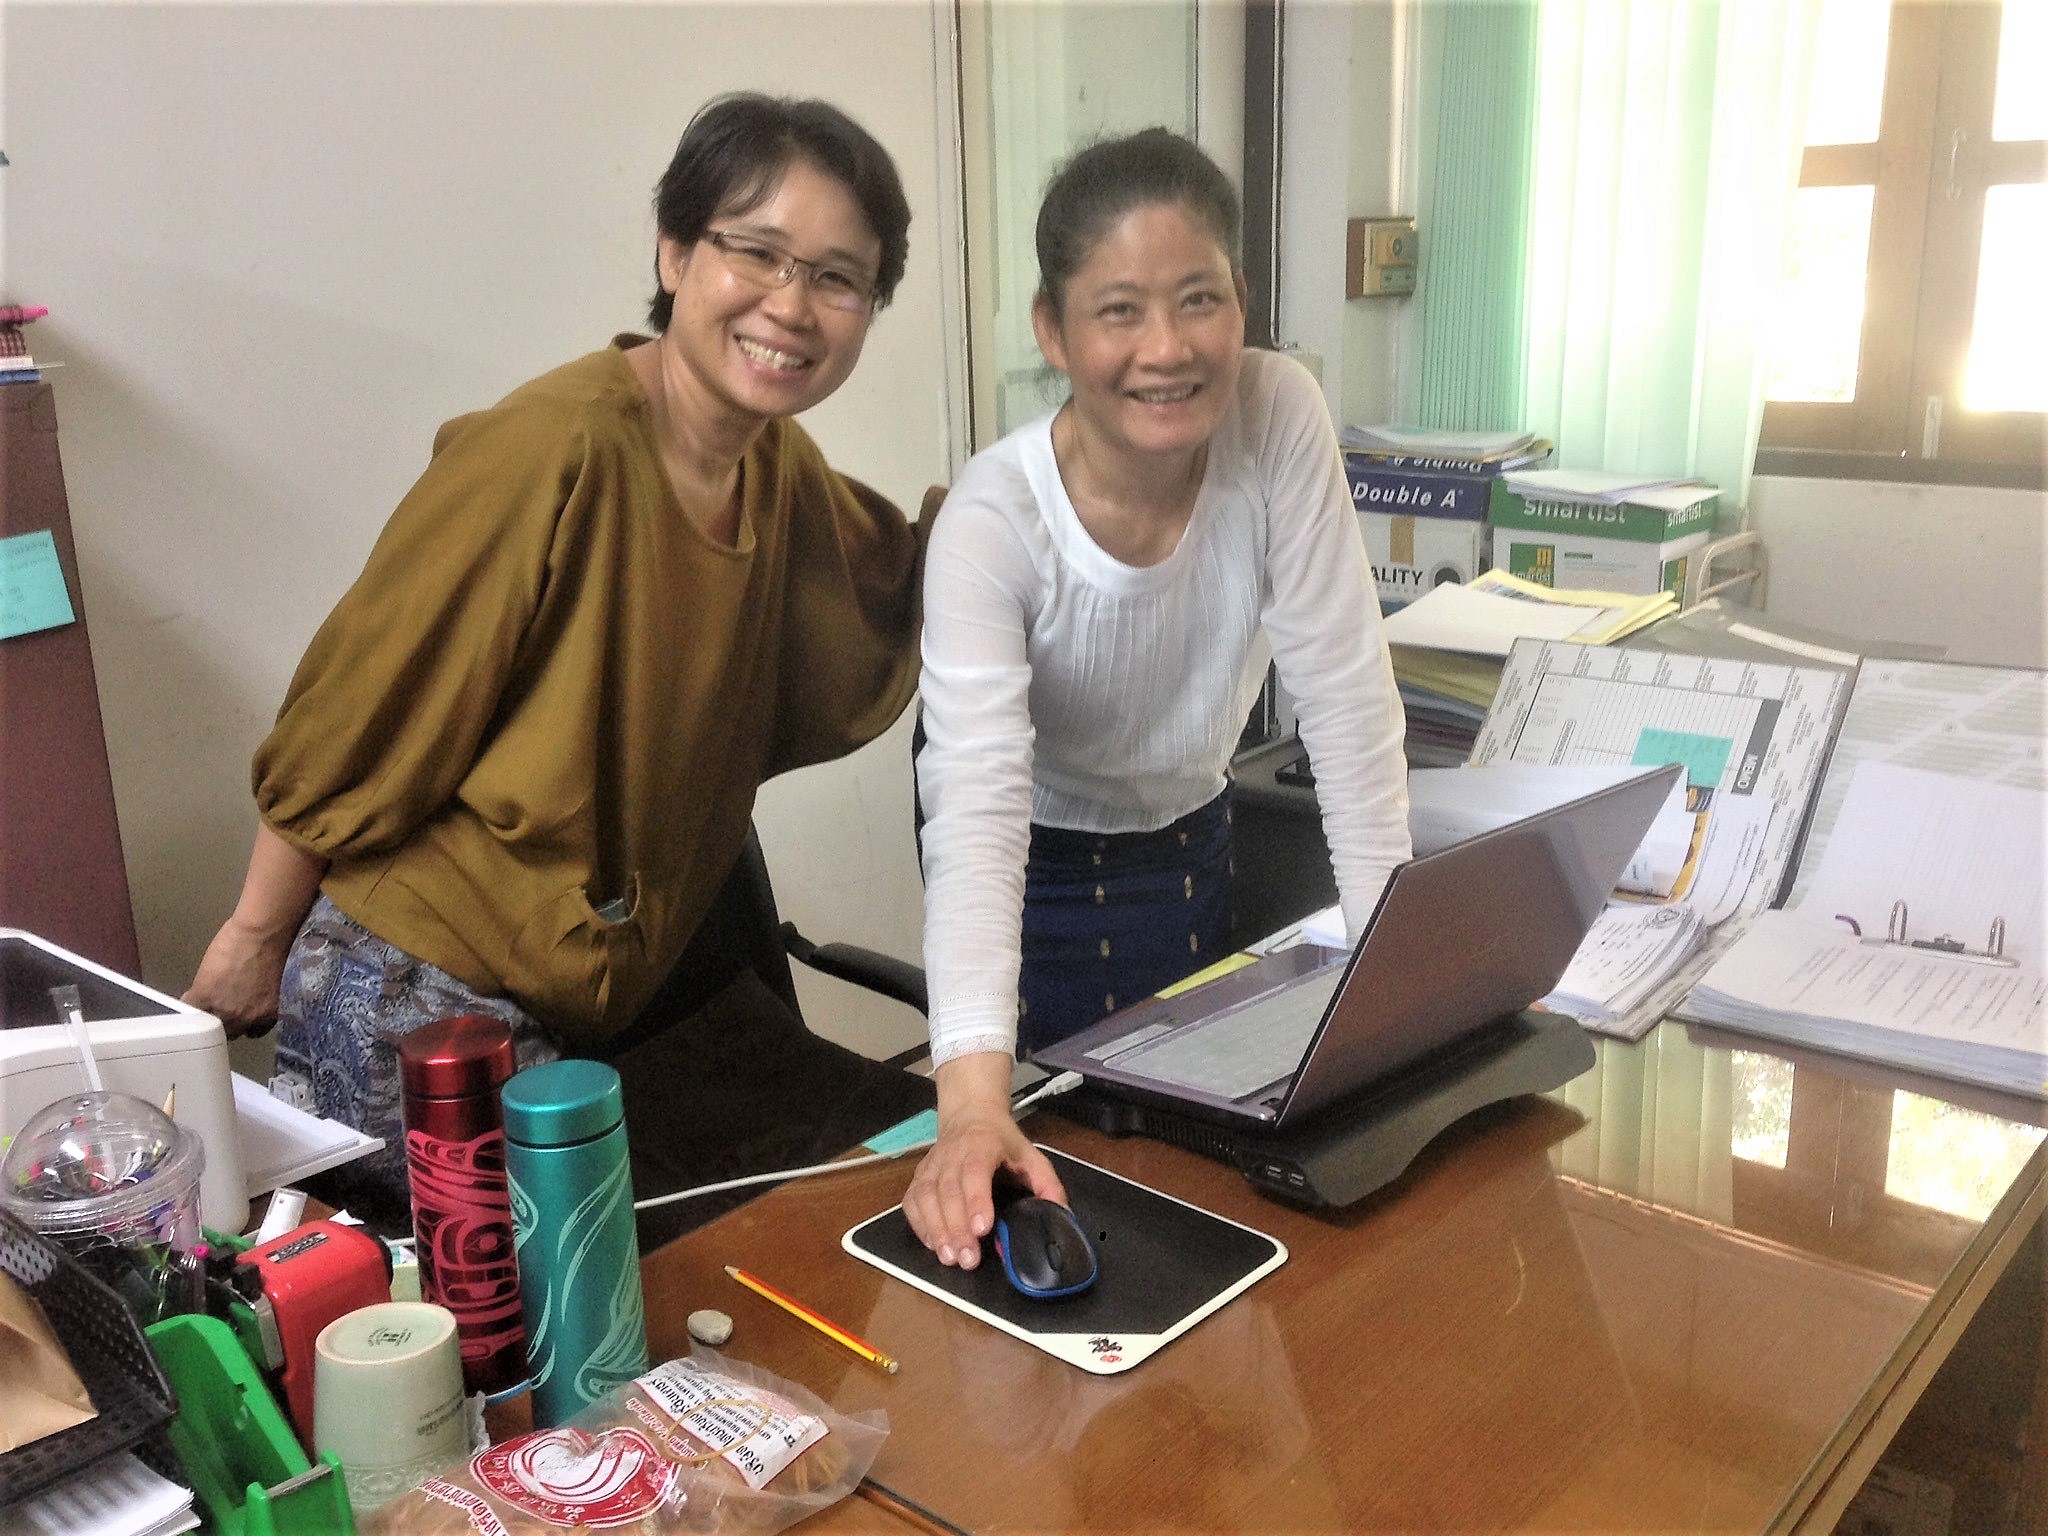 Grateful to be back in Chiang Mai working with my beloved teammates, Lum and Jib. They are such a gift — always encouraging.